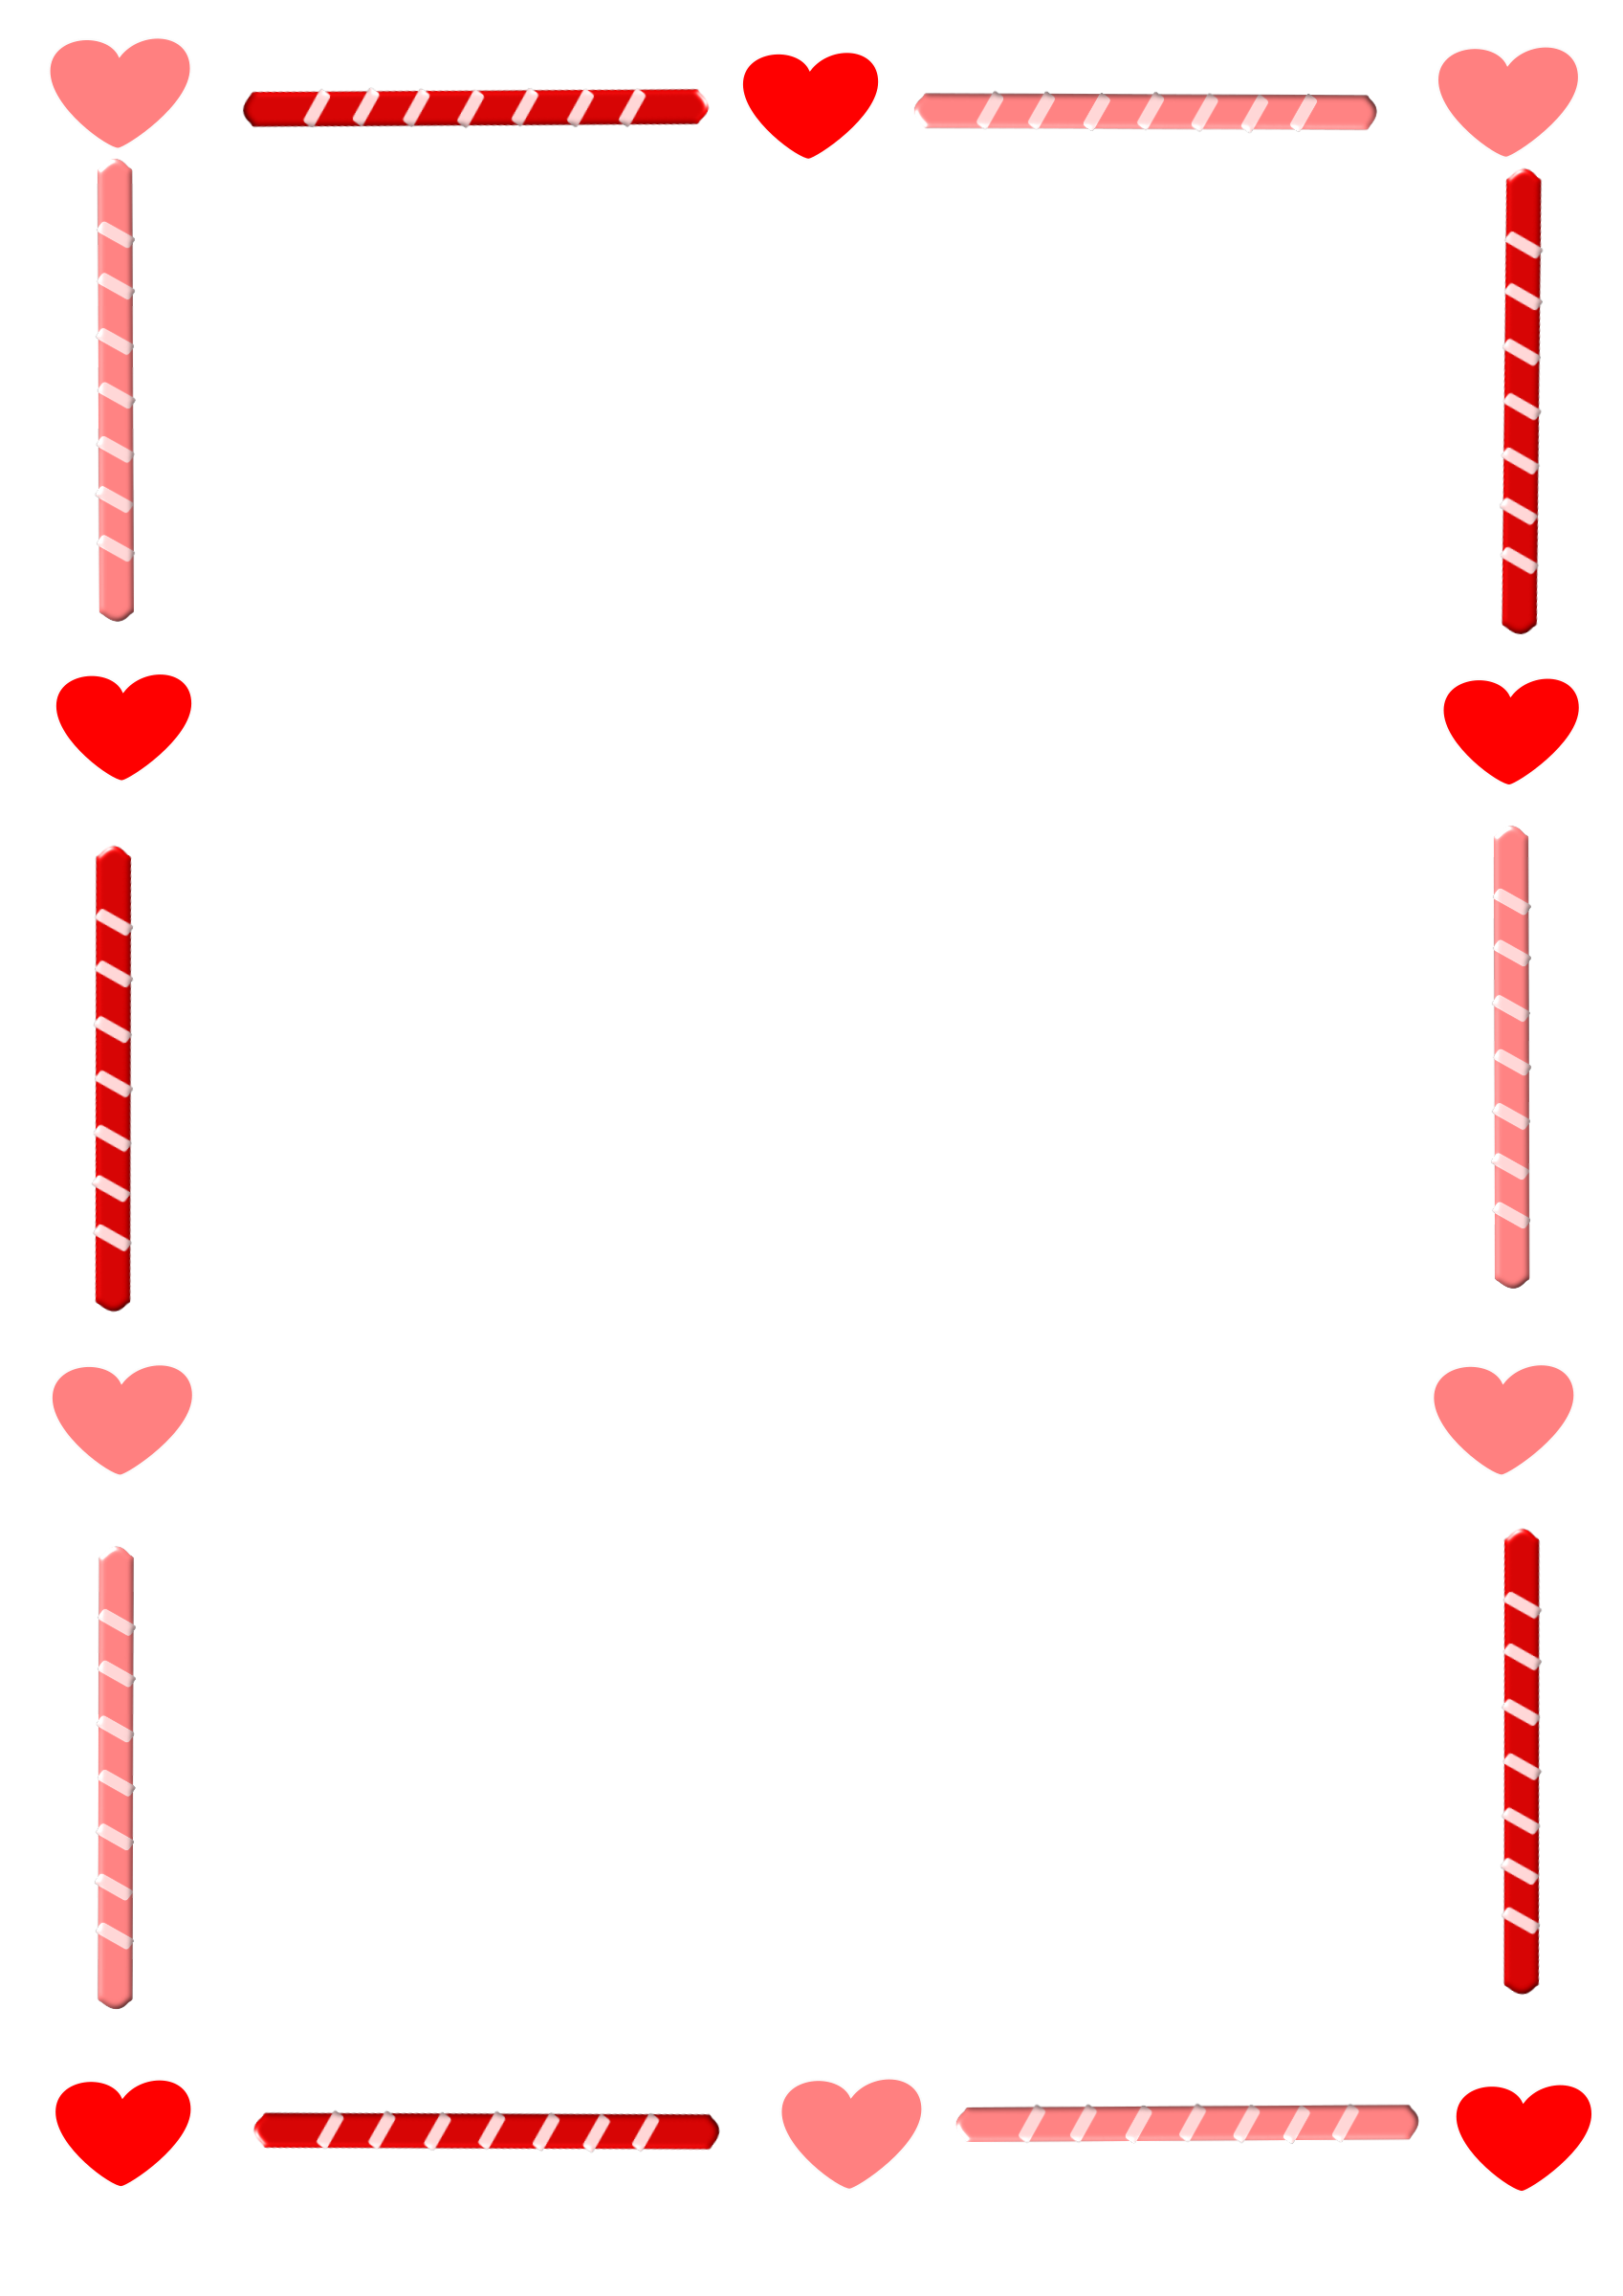 Candy cane heart clipart free clipart freeuse stock Pink Clipart borders - Free Clipart on Dumielauxepices.net clipart freeuse stock